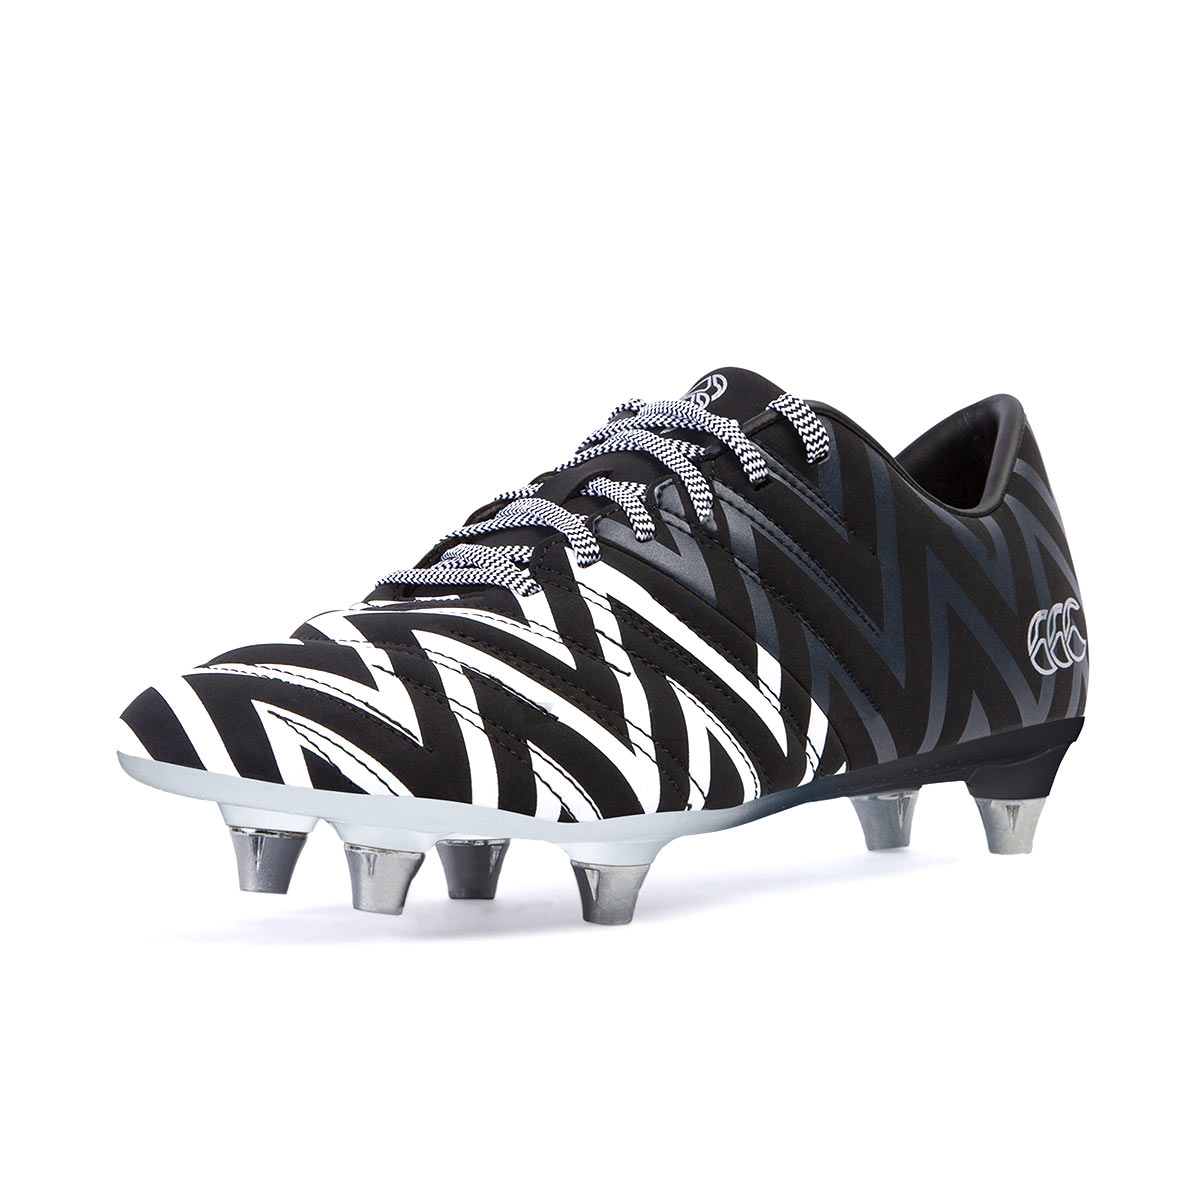 40a75947f63802 Kids Black and White Canterbury Phoenix 2.0 Rugby Boots   rugbystore